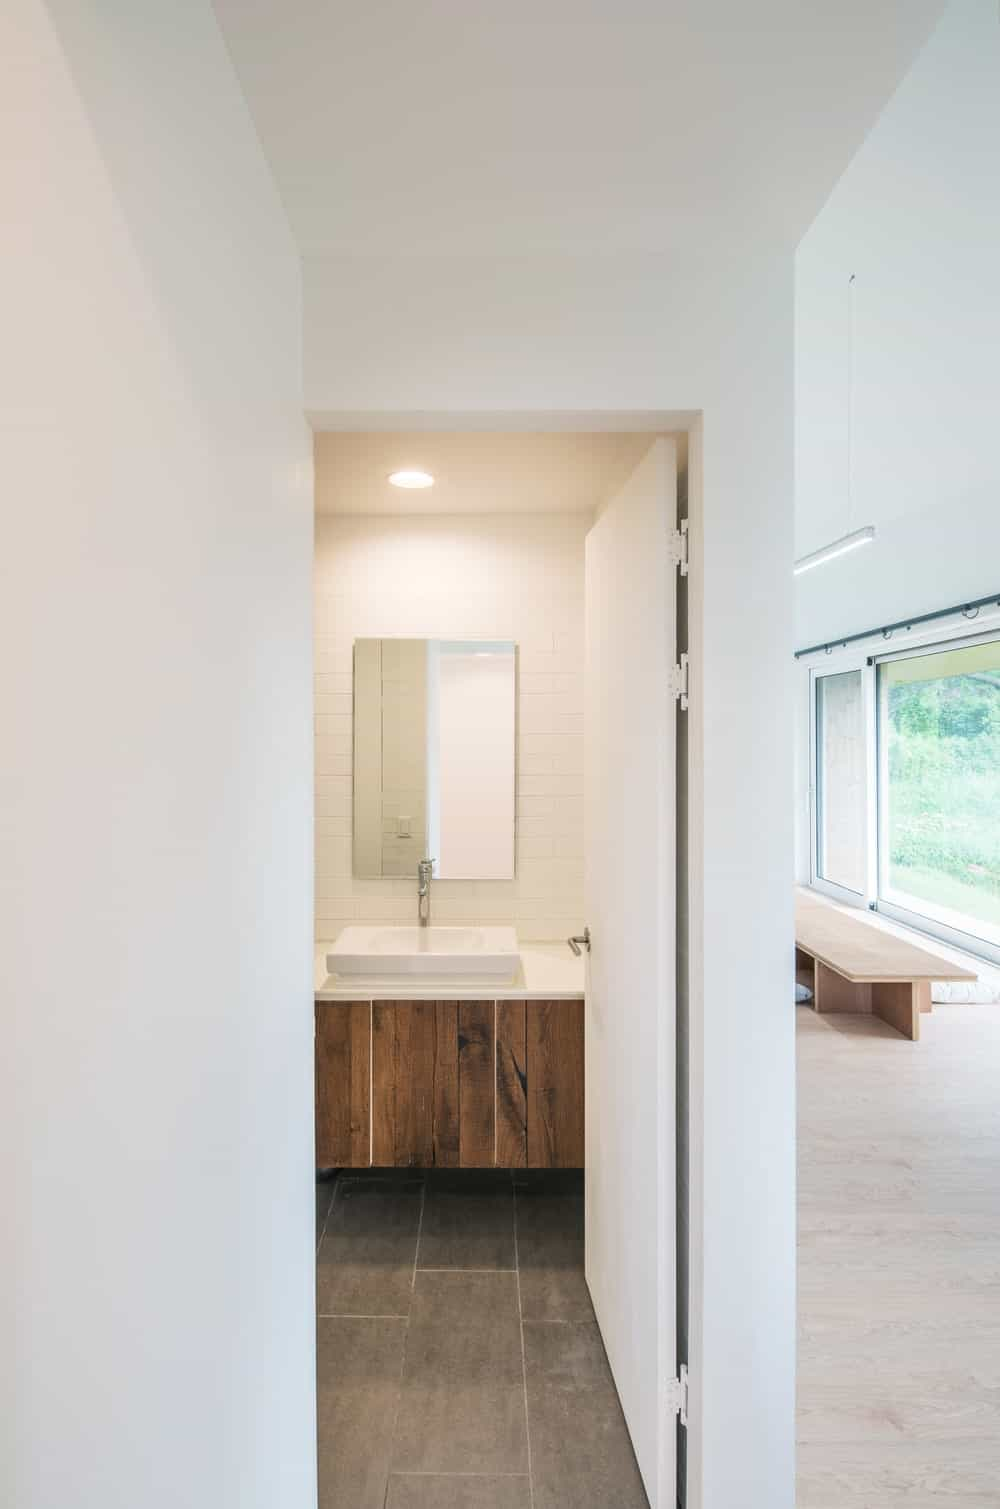 The bathroom has a brown wooden floating vanity with a wall-mounted mirror above.